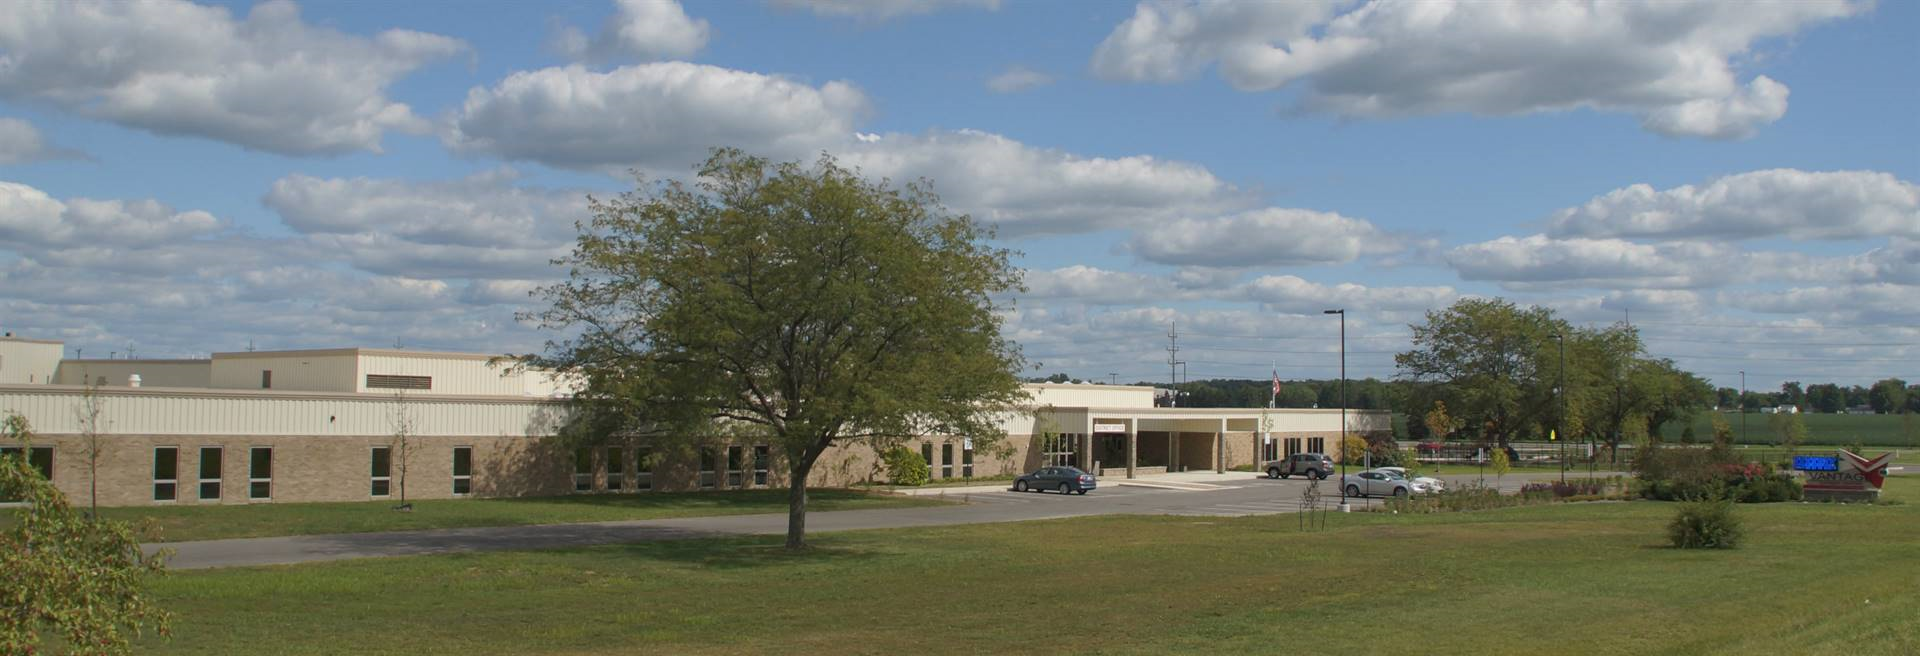 Panoramic picture of the Vantage building with green grass and trees